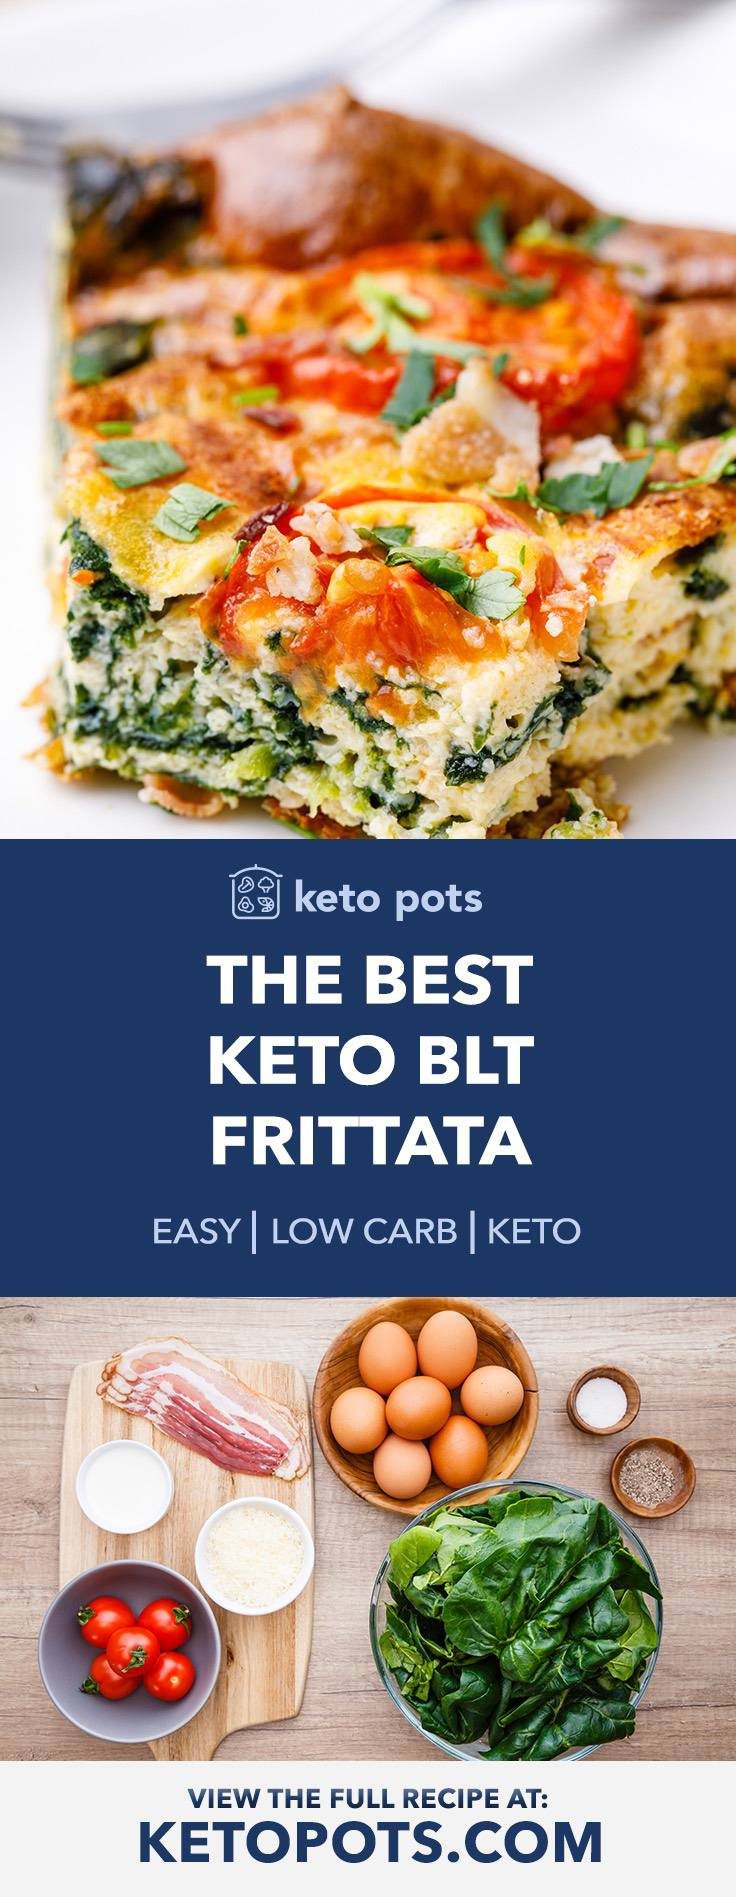 The Best Keto BLT Frittata for a Wholesome Breakfast